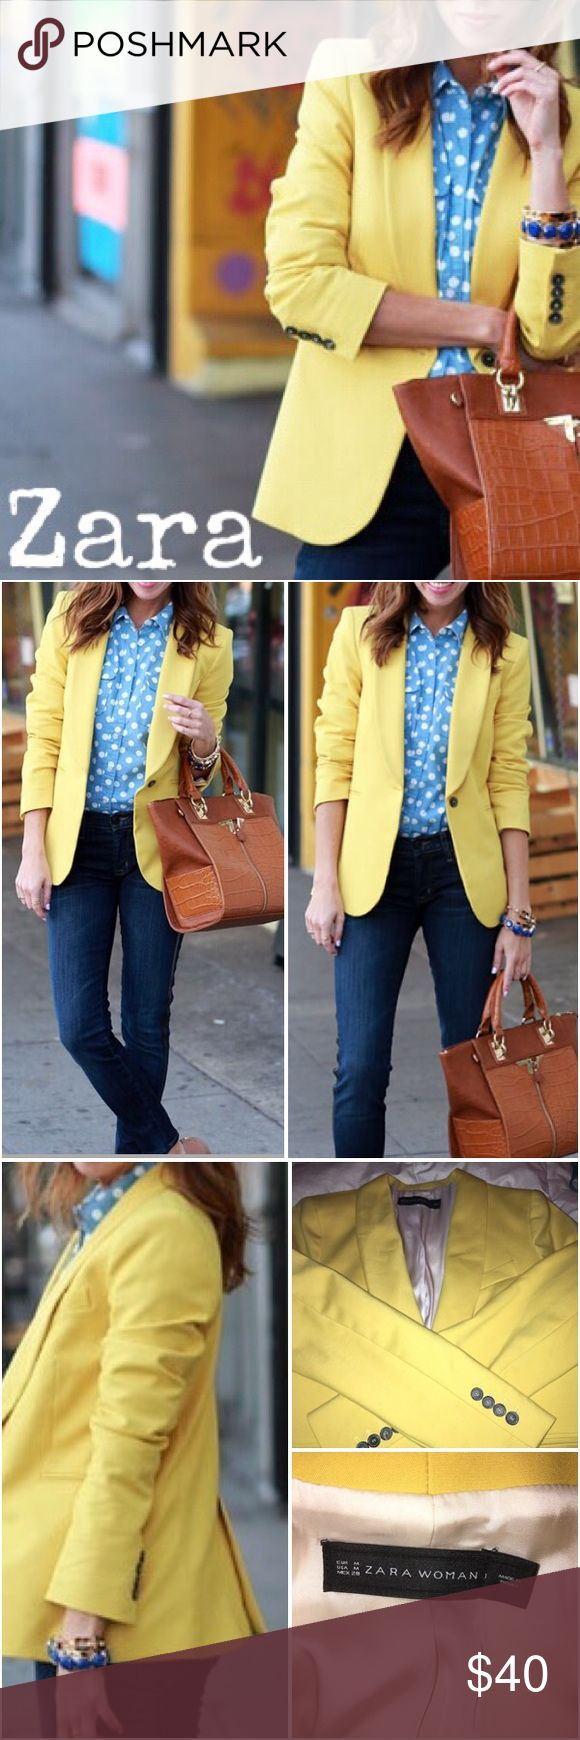 "Zara Sunny Yellow Blazer Perfect for all seasons! Zara blazer in sunny yellow. Shawl collar, beaded pockets, single button, and back vent. Great with jeans or dress up for work! Fully lined in off-white. Great for a little contrast when rolling up your sleeves! Worn once. Length 27"". Sleeve length 24"". Bust 17"". Zara Jackets & Coats Blazers"